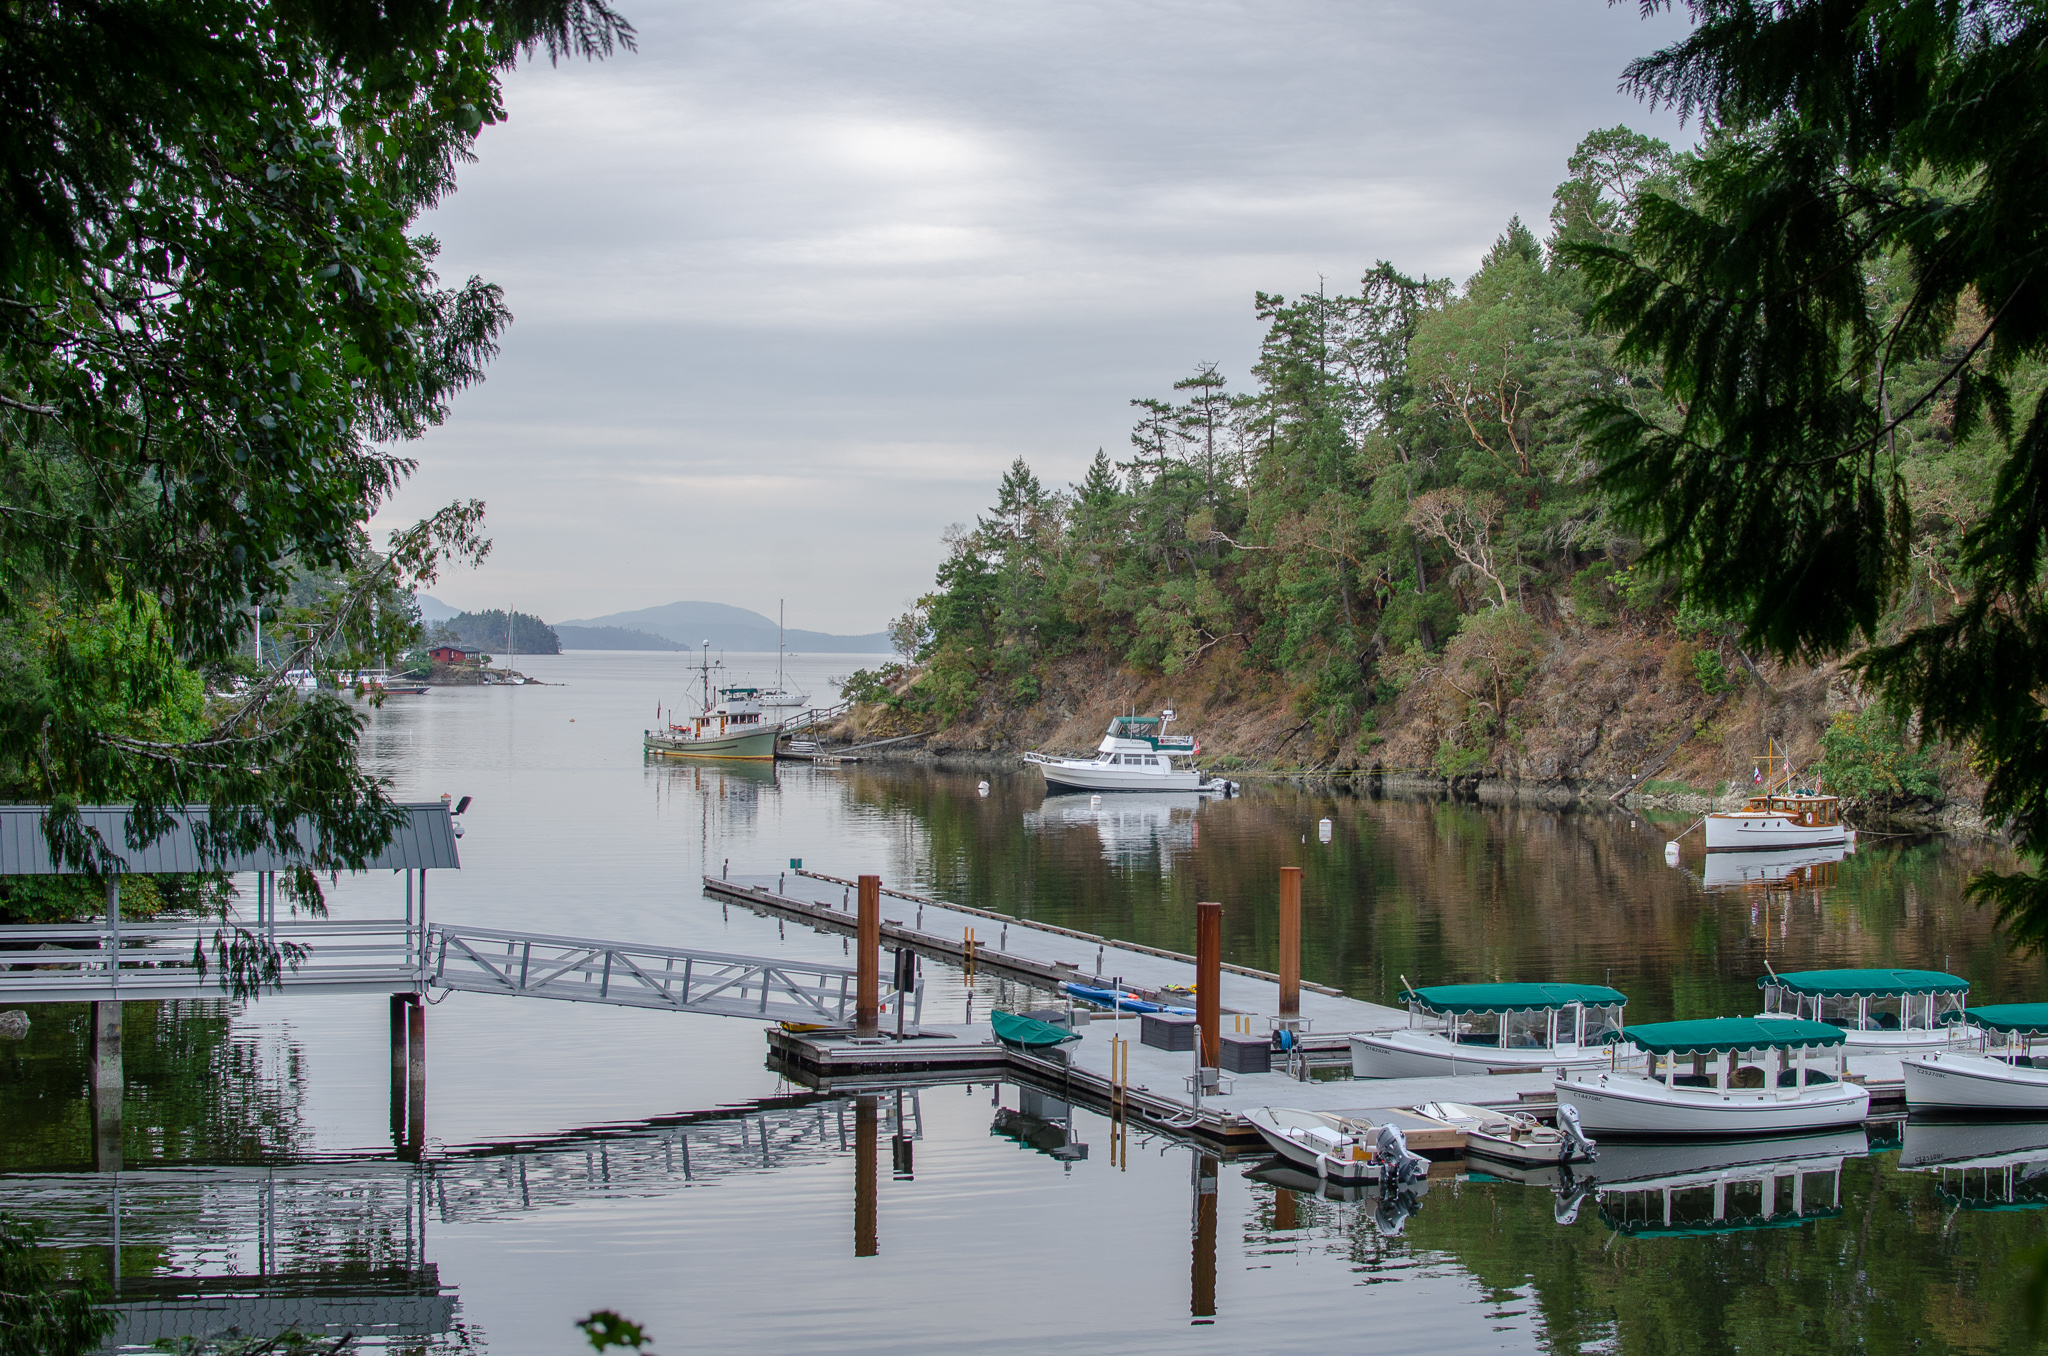 Glassy water with a pier and greenery surrounding. There are mountains in the distance